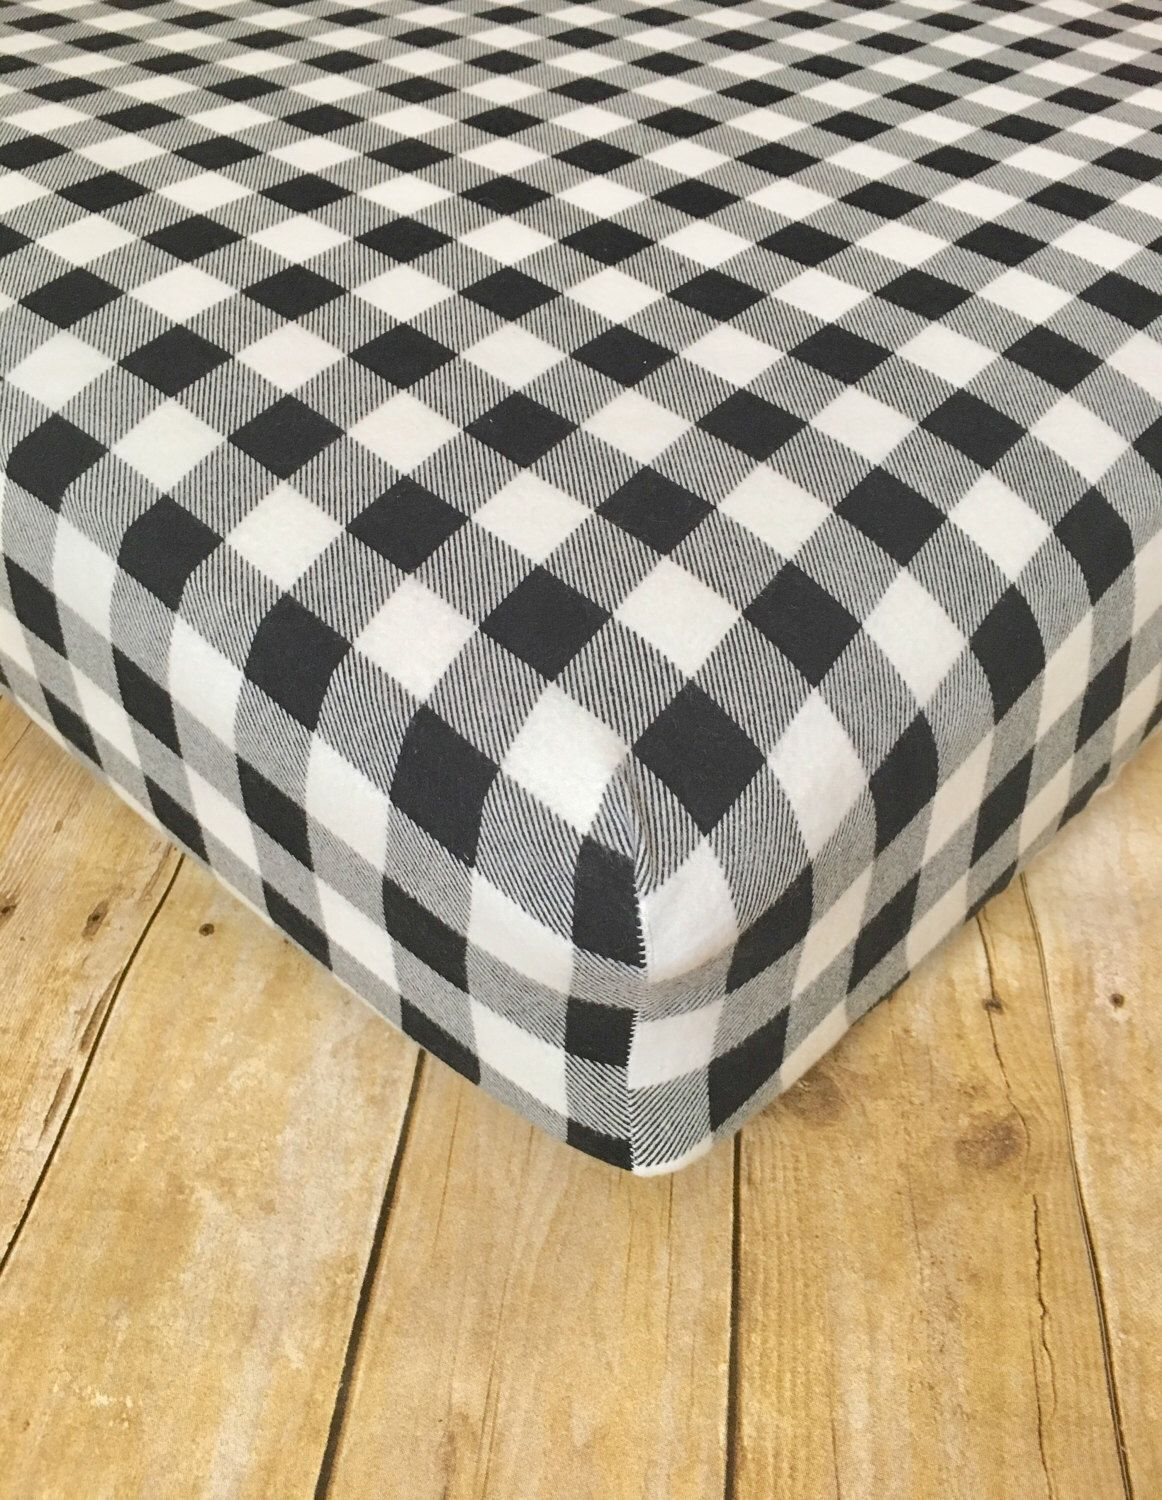 Red flannel sheets  Black and White Buffalo Plaid Flannel Sheets  BUNK ROOMGUEST ROOM